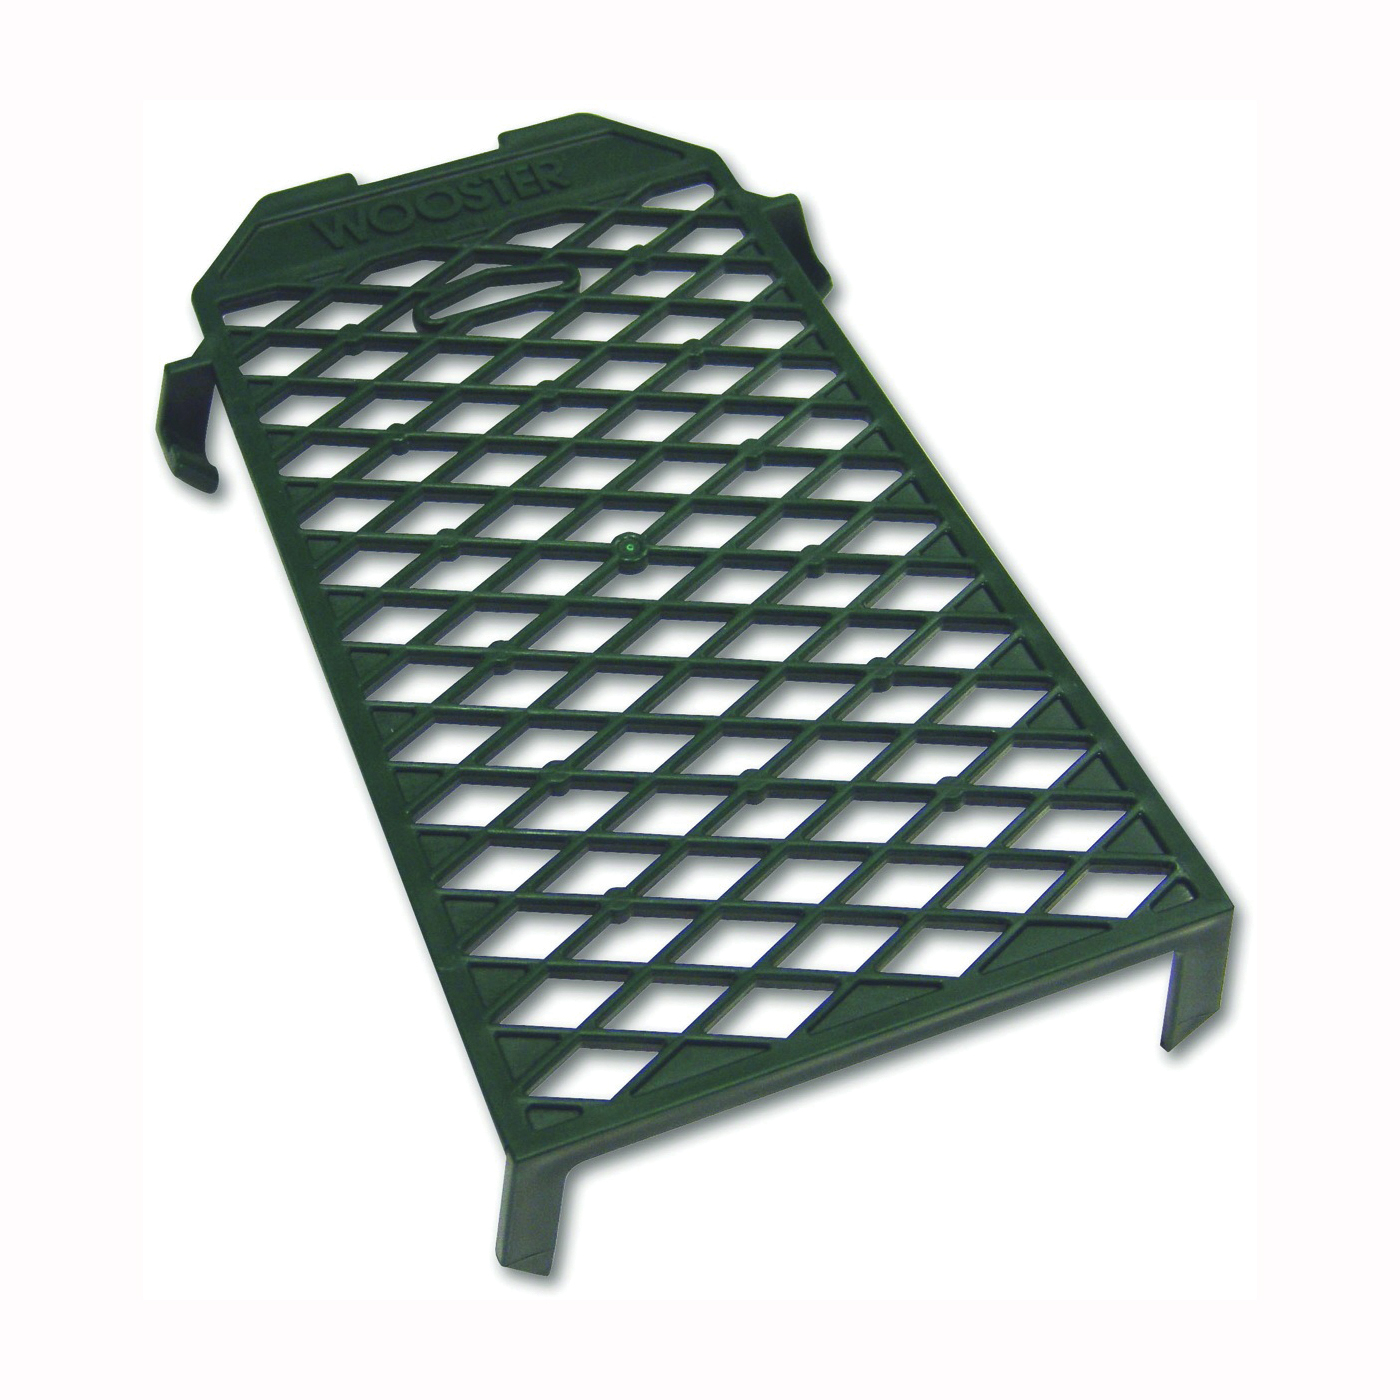 Picture of WOOSTER R008 Paint Grid, 9 in L, 5 in W, Polypropylene, Green, For: 1 gal Metal Paint Can